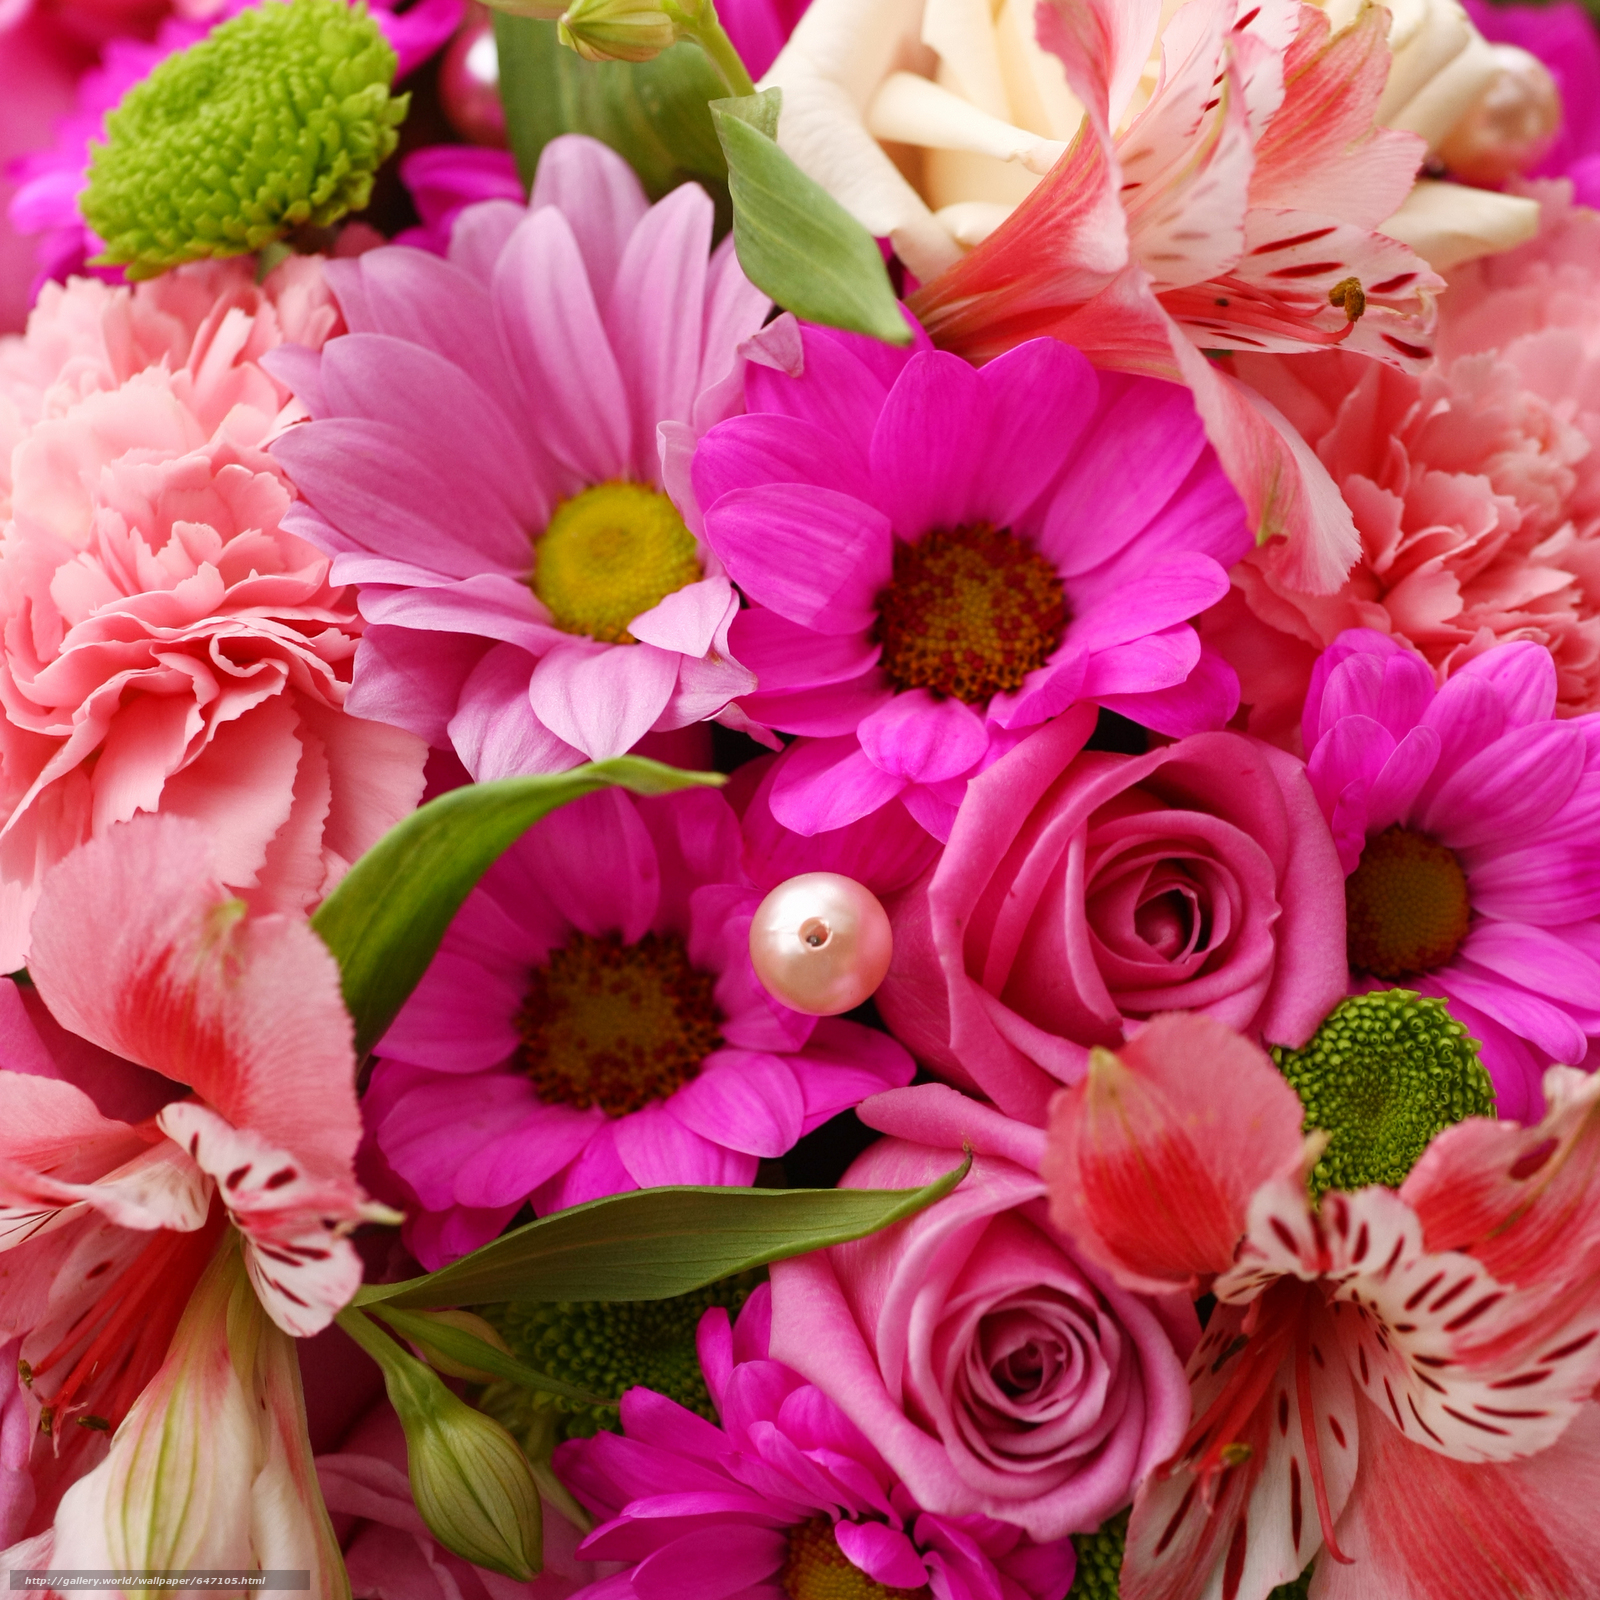 Download wallpaper flowers bouquet flora free desktop for A lot of different flowers make a bouquet